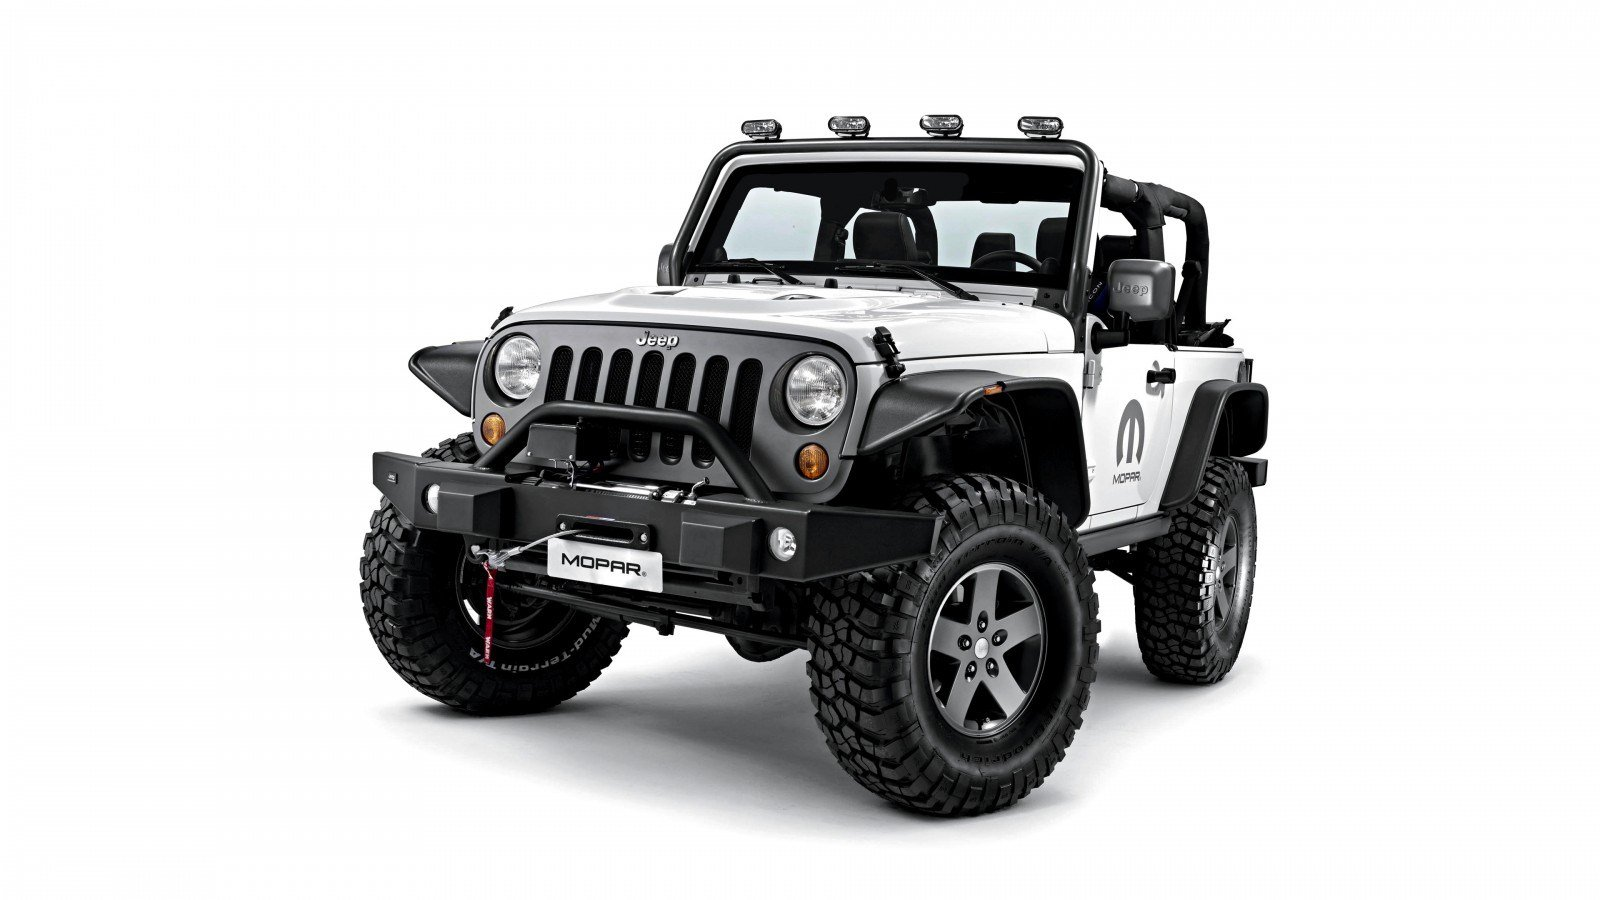 New 2015 Jeep Wrangler Unlimited Mopar Wallpaper Hd Car On This Month